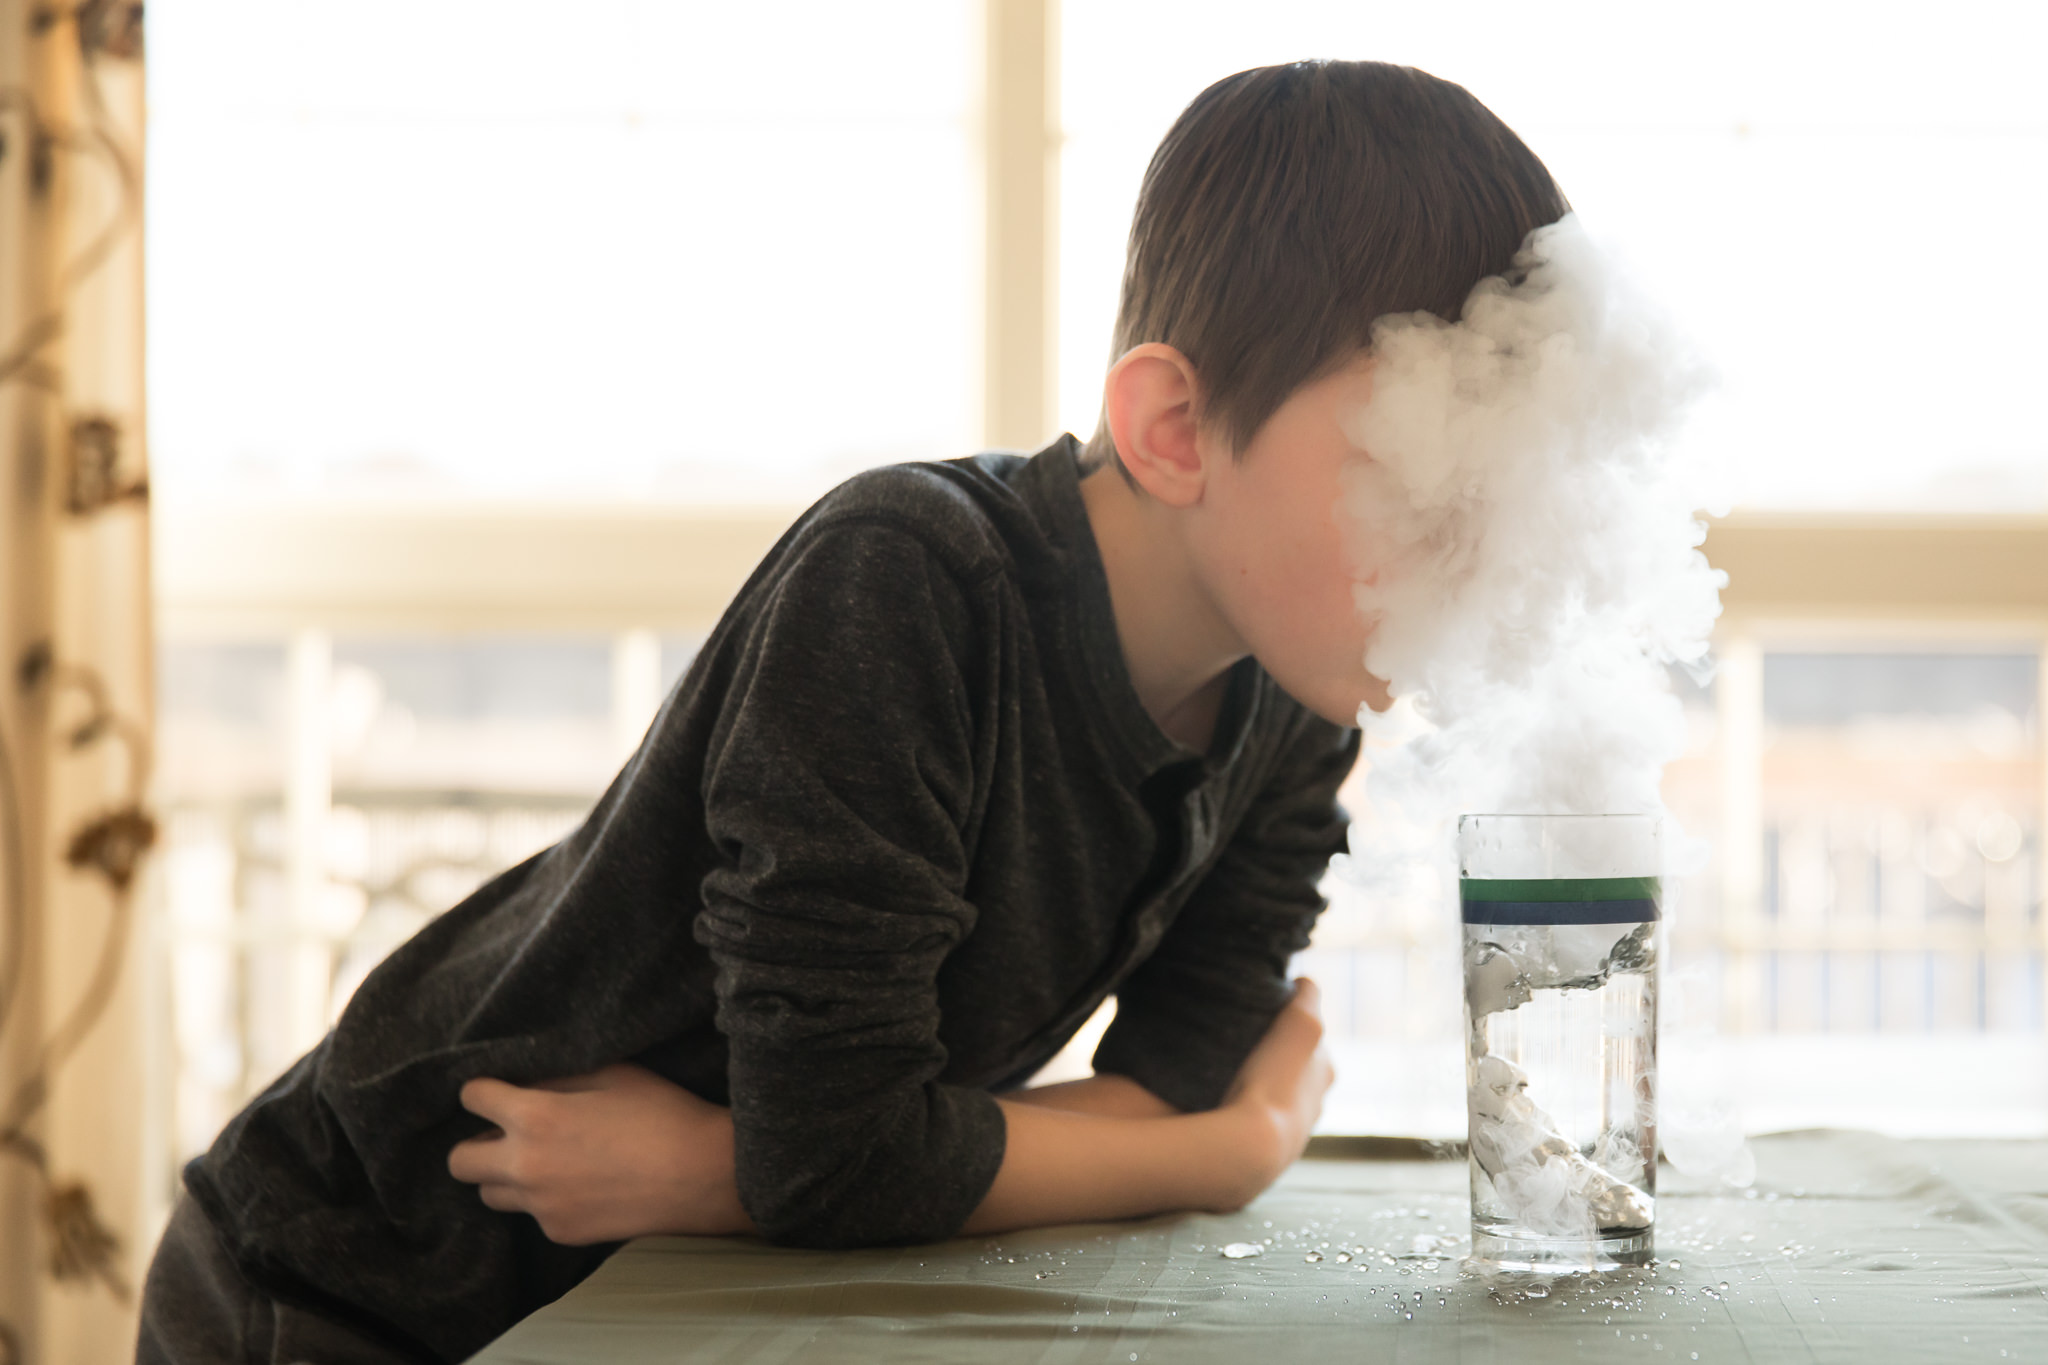 Boy with a face hidden by dry ice vapor.